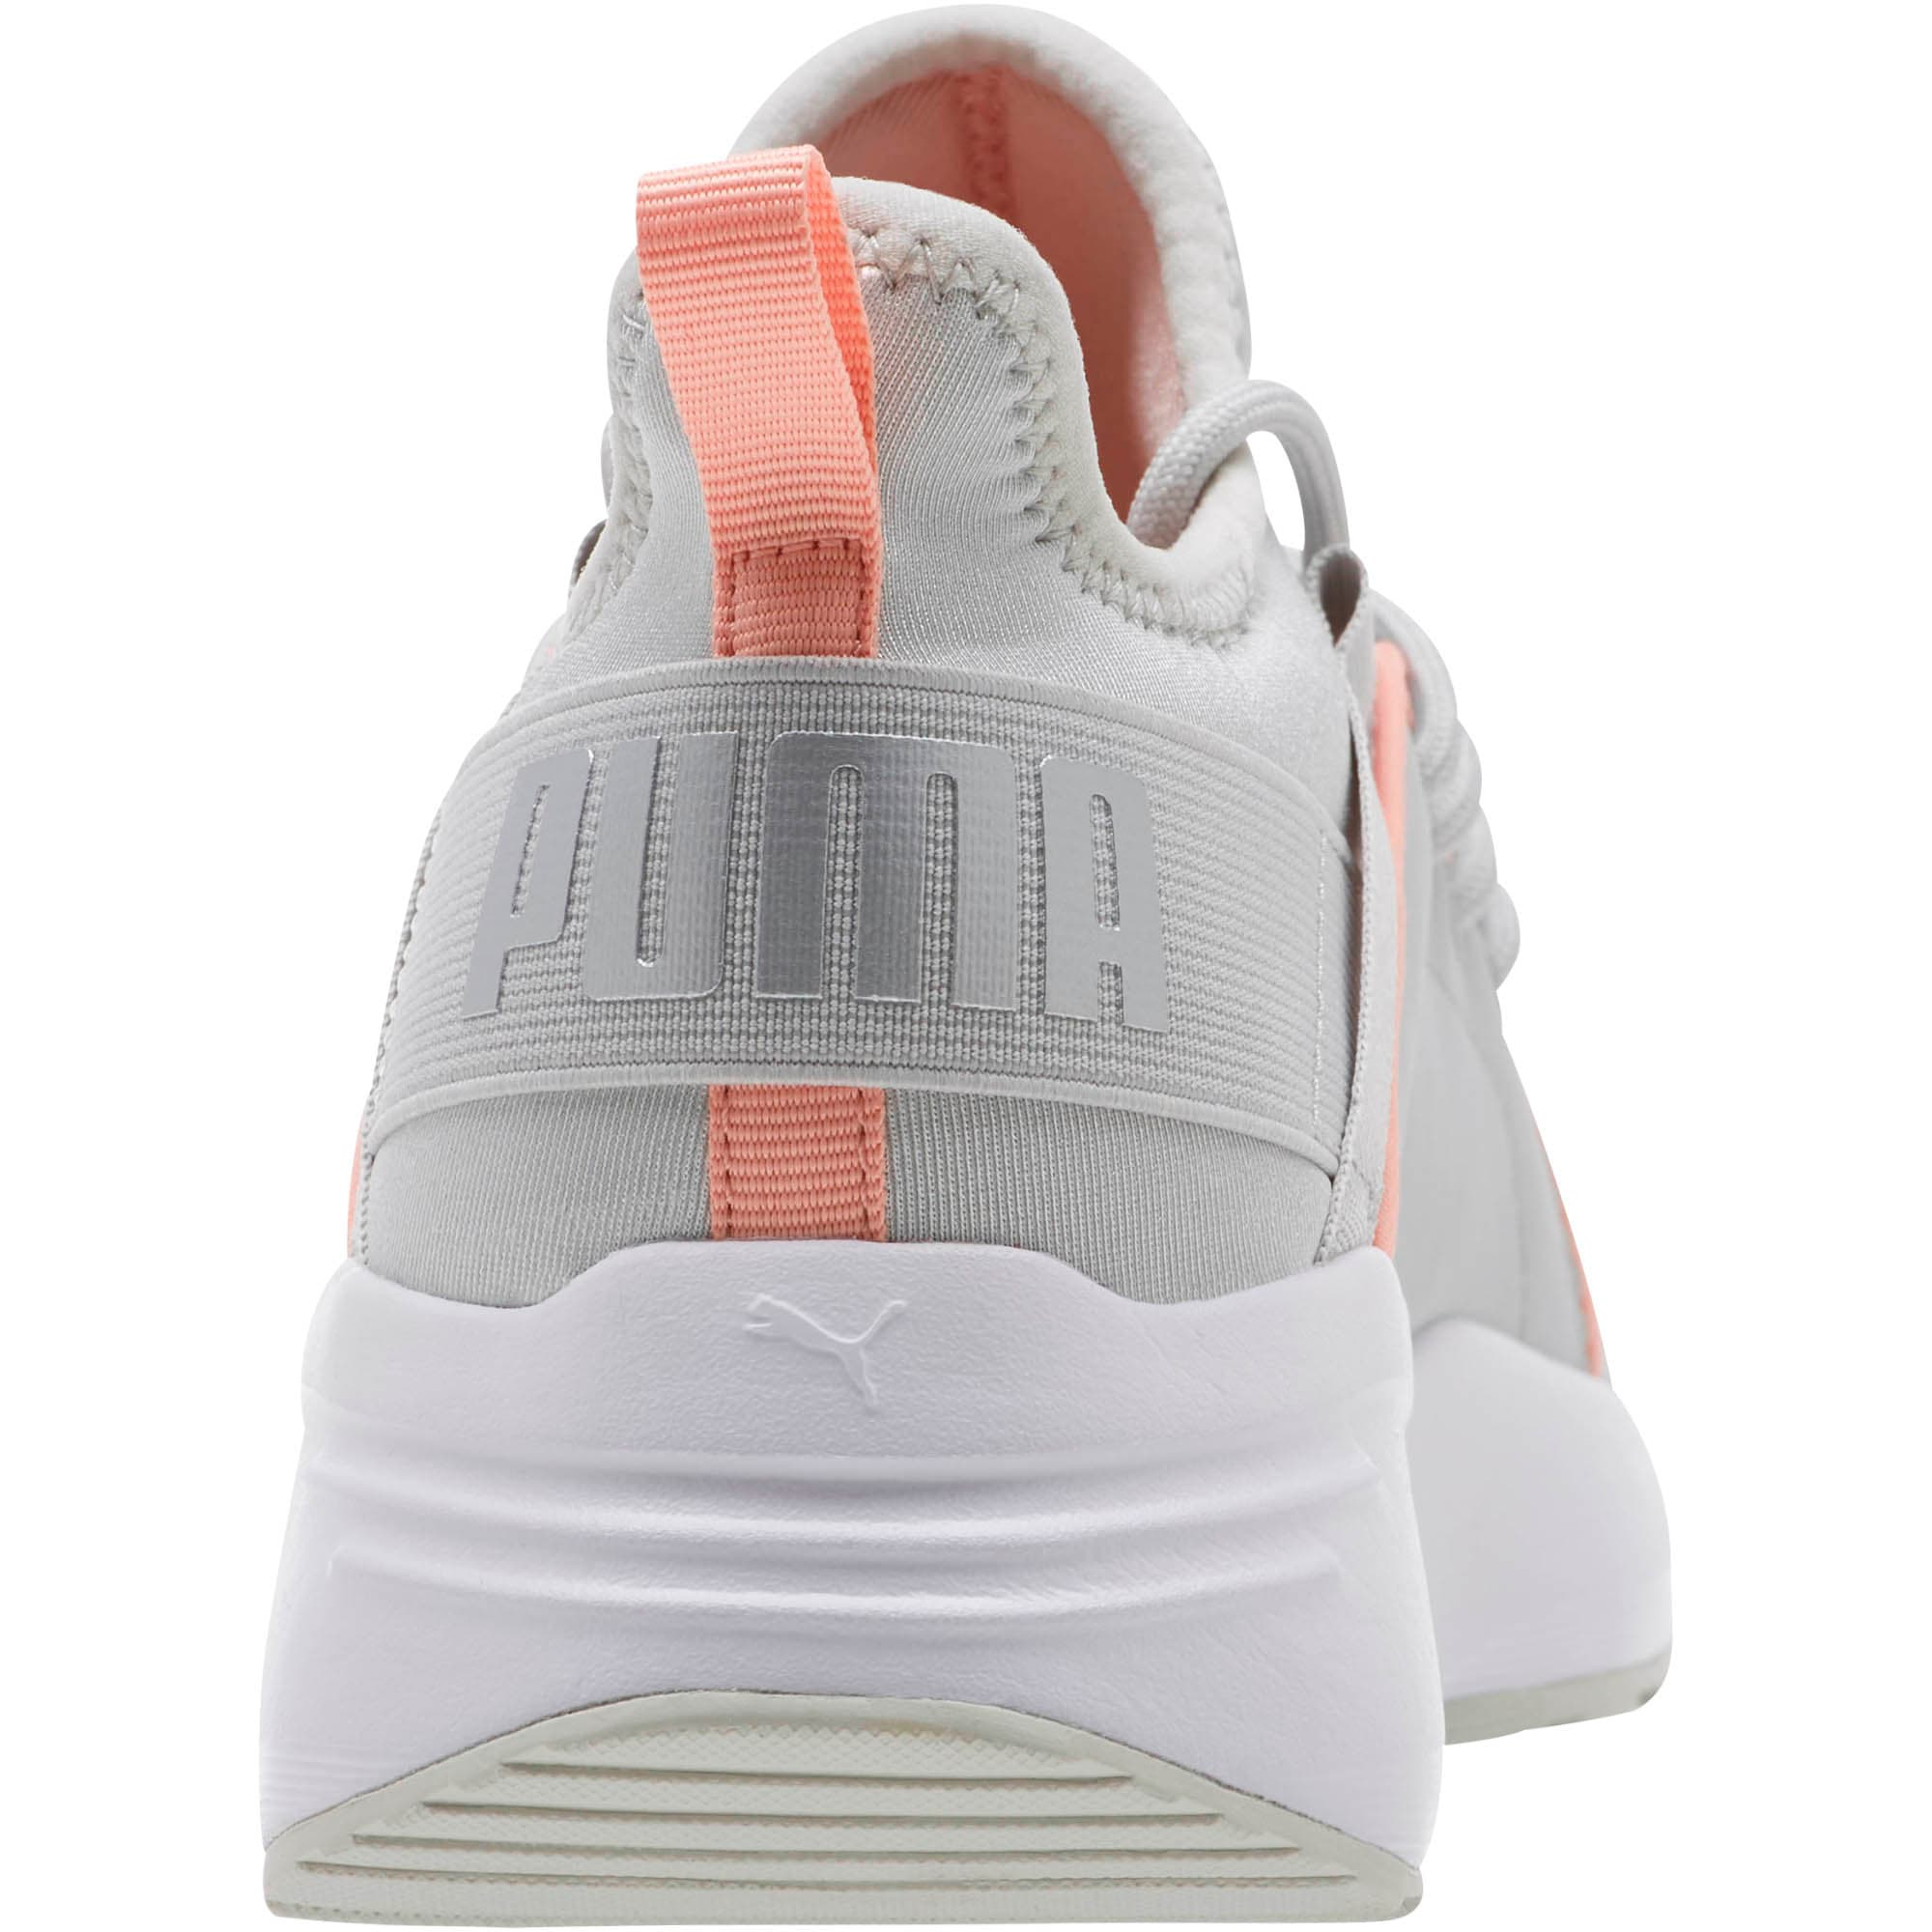 Thumbnail 4 of Sirena Women's Training Shoes, Glacier Gray-Peach Bud, medium